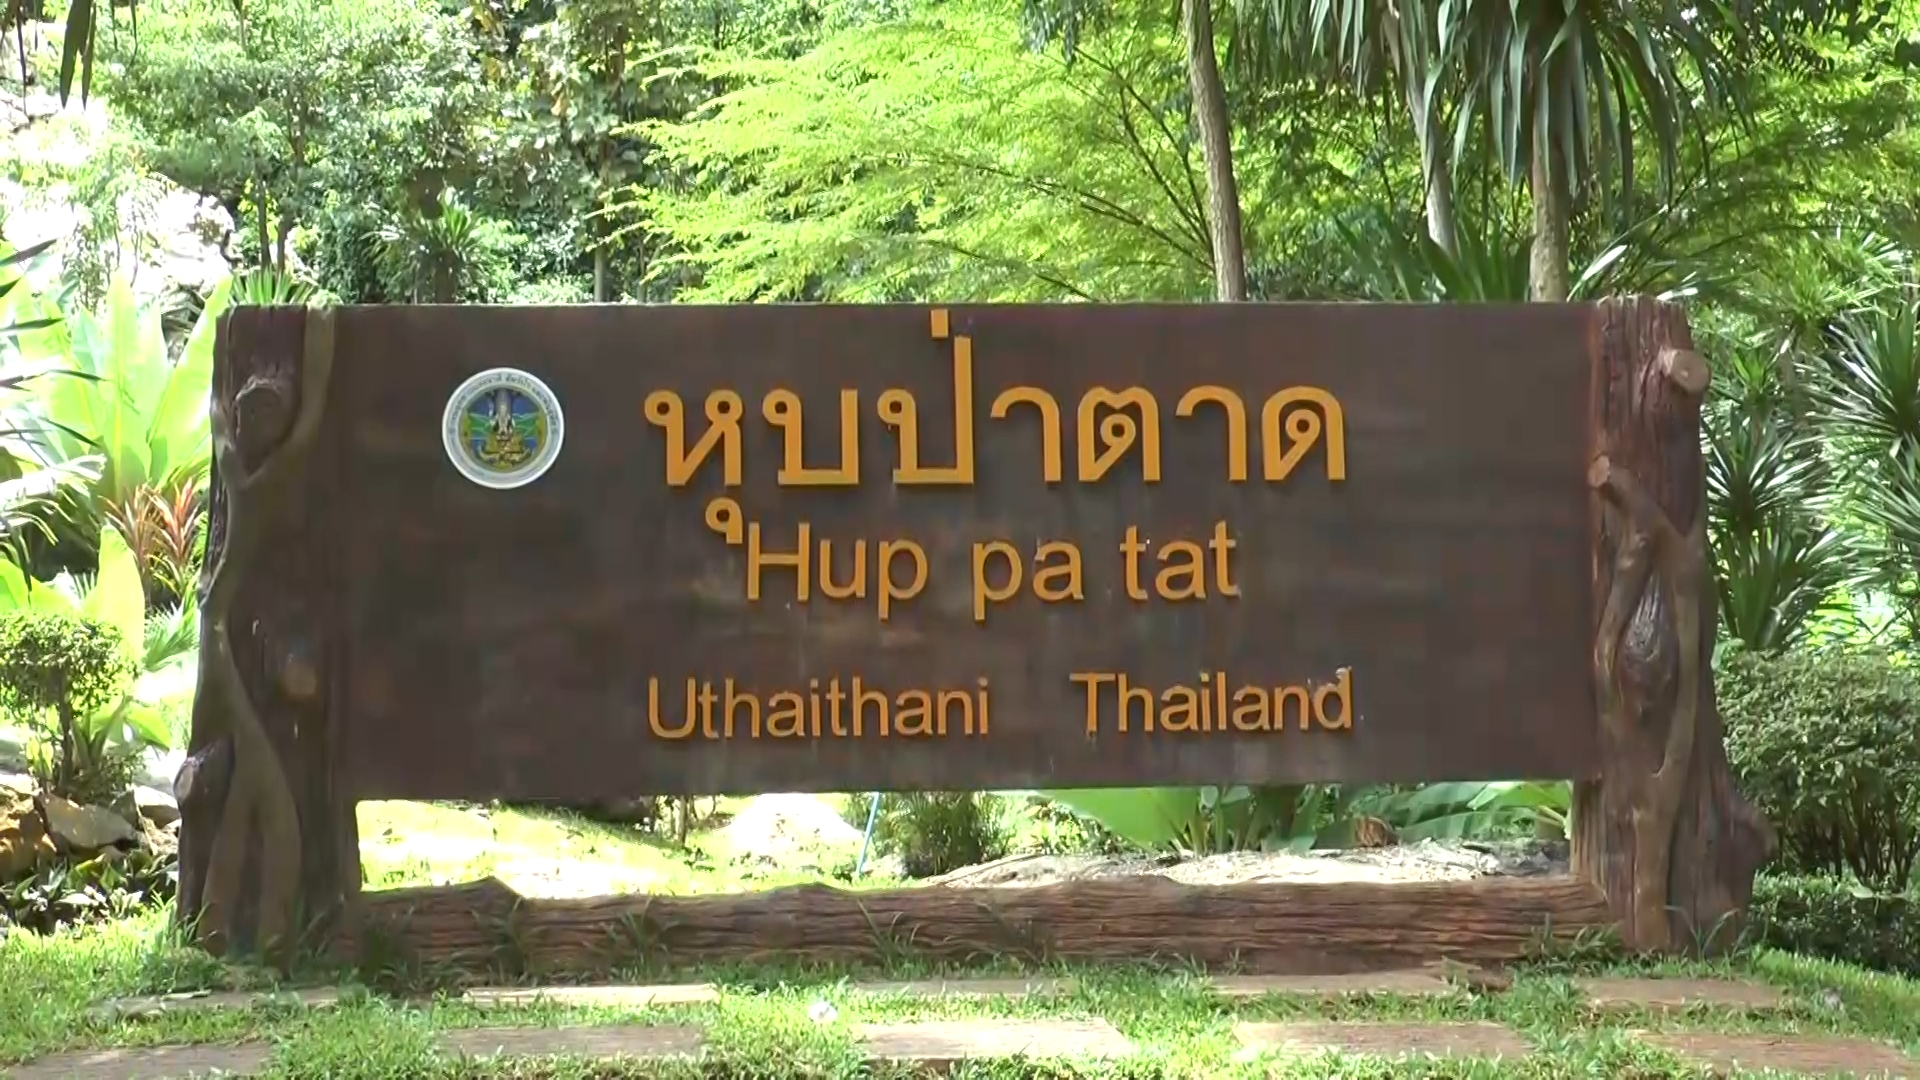 """<a href=""""website_en/news/news_detail/WNECO6011160010007"""" target=""""_blank"""" class=""""fontbold font14"""" style=""""line-height: 1.5em;"""">Uthai Thani ancient forest now open to tourists</a>                              <p>UTHAI THANI, 16 November 2017 (NNT) - Thailand""""s Uthai Thani province has kicked off the post-monsoon high season, inviting nature lovers to visit ...</p><p class=""""fontbold gray-color"""">16 Nov 2017 